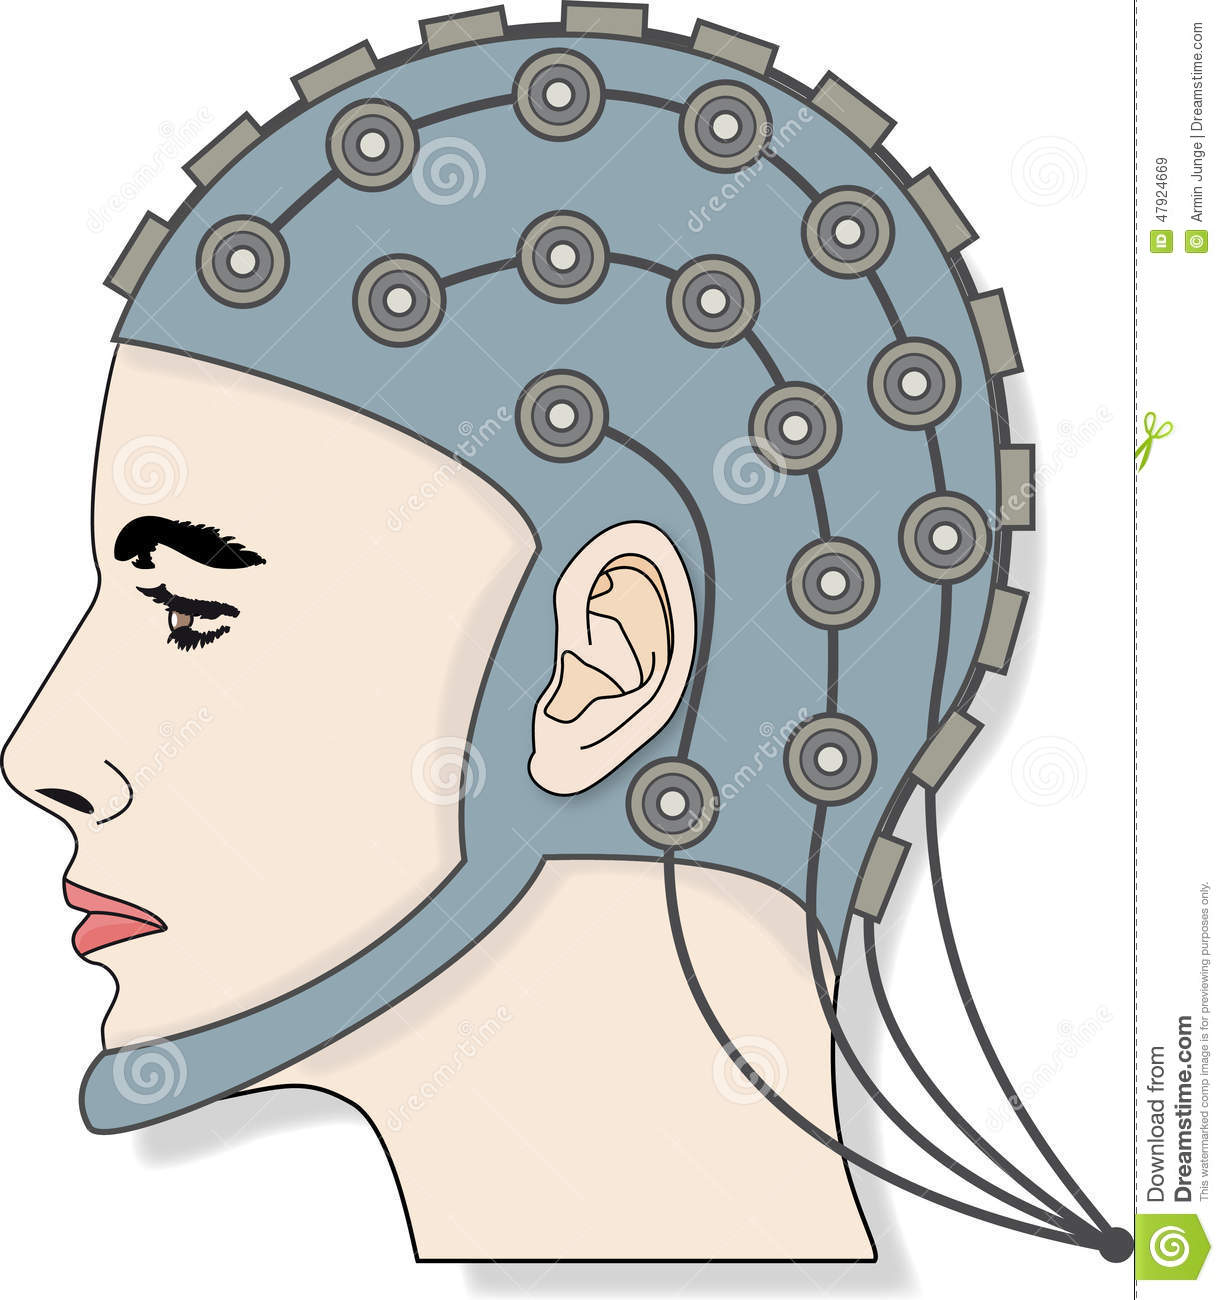 EEG 3 Stock Illustration.